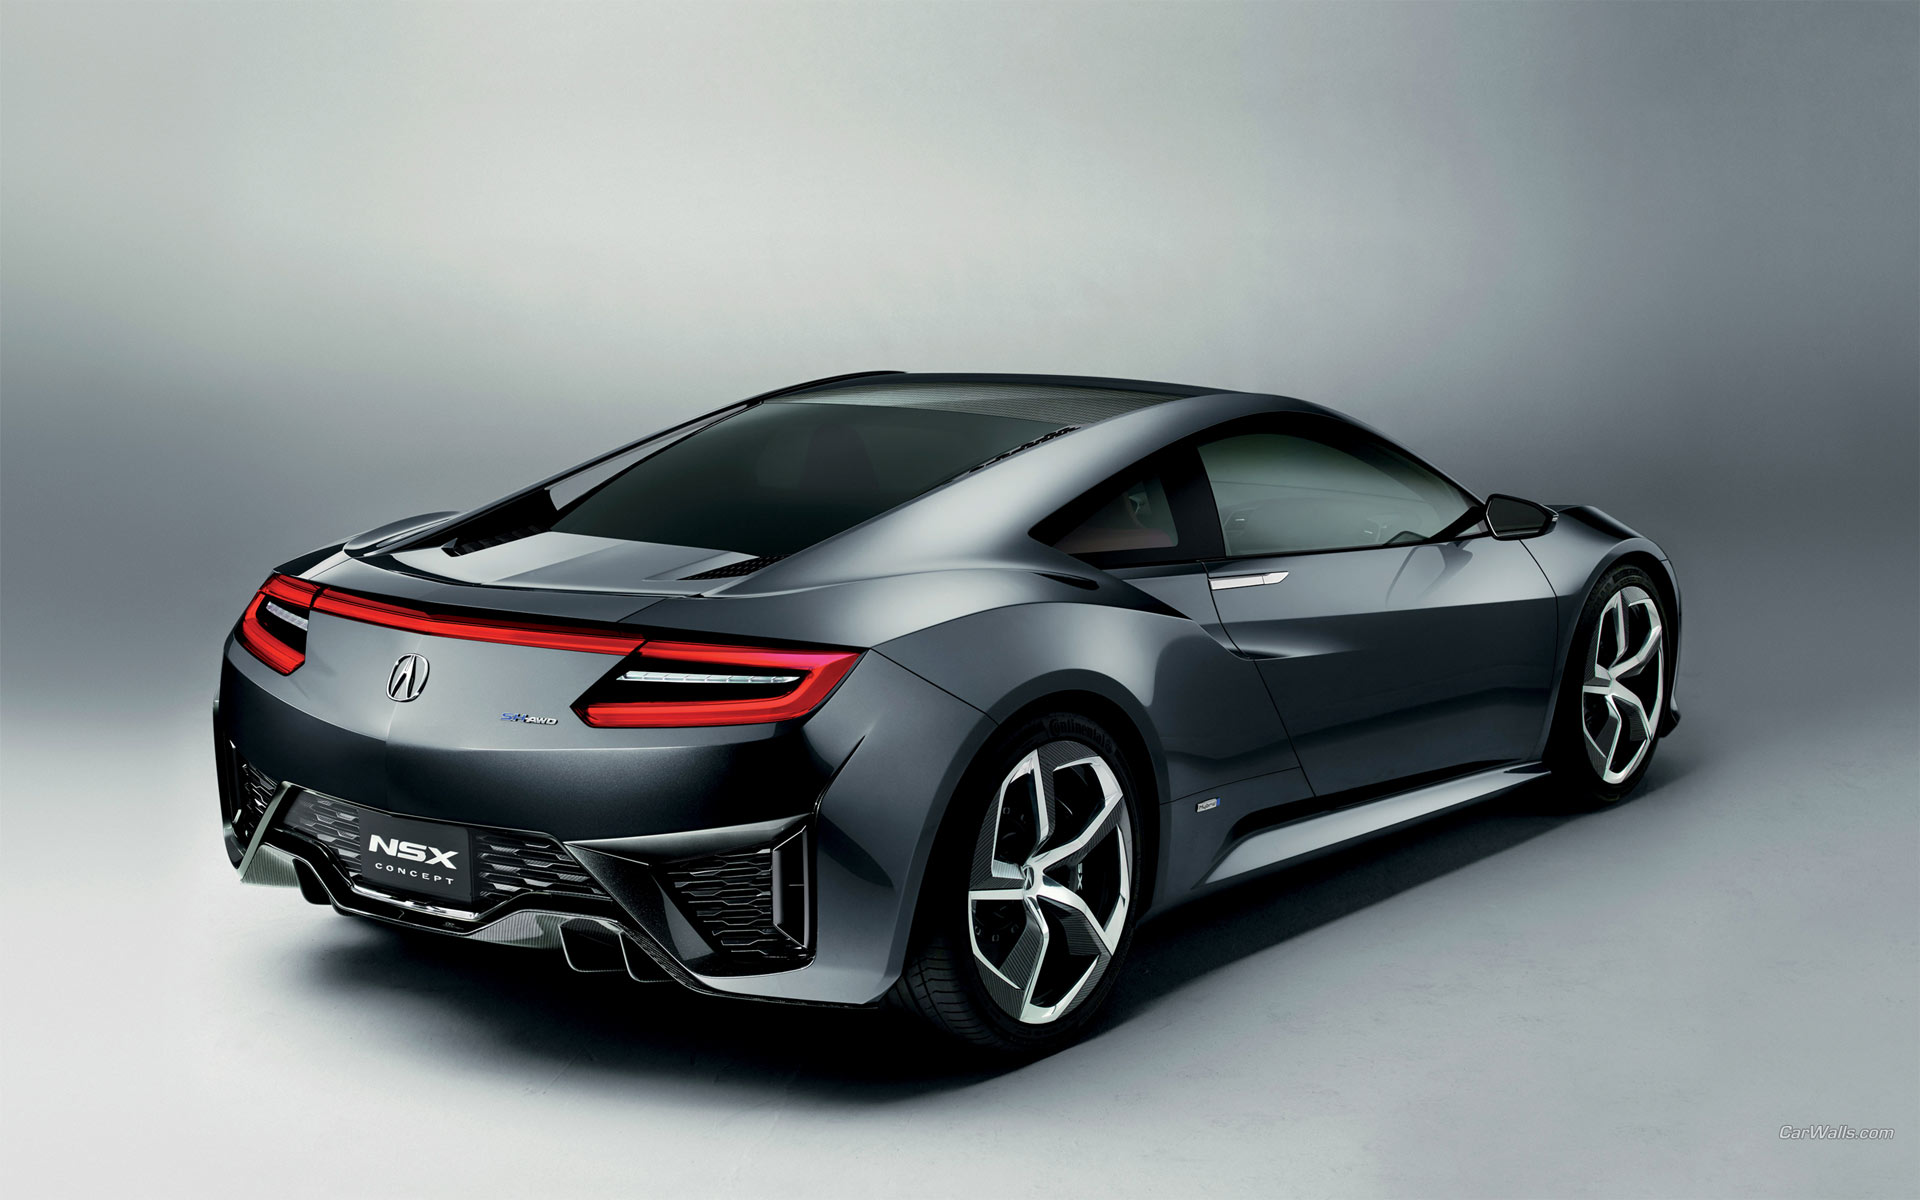 acura 2013 nsx1 Acura NSX Concept 2013 Wallpapers